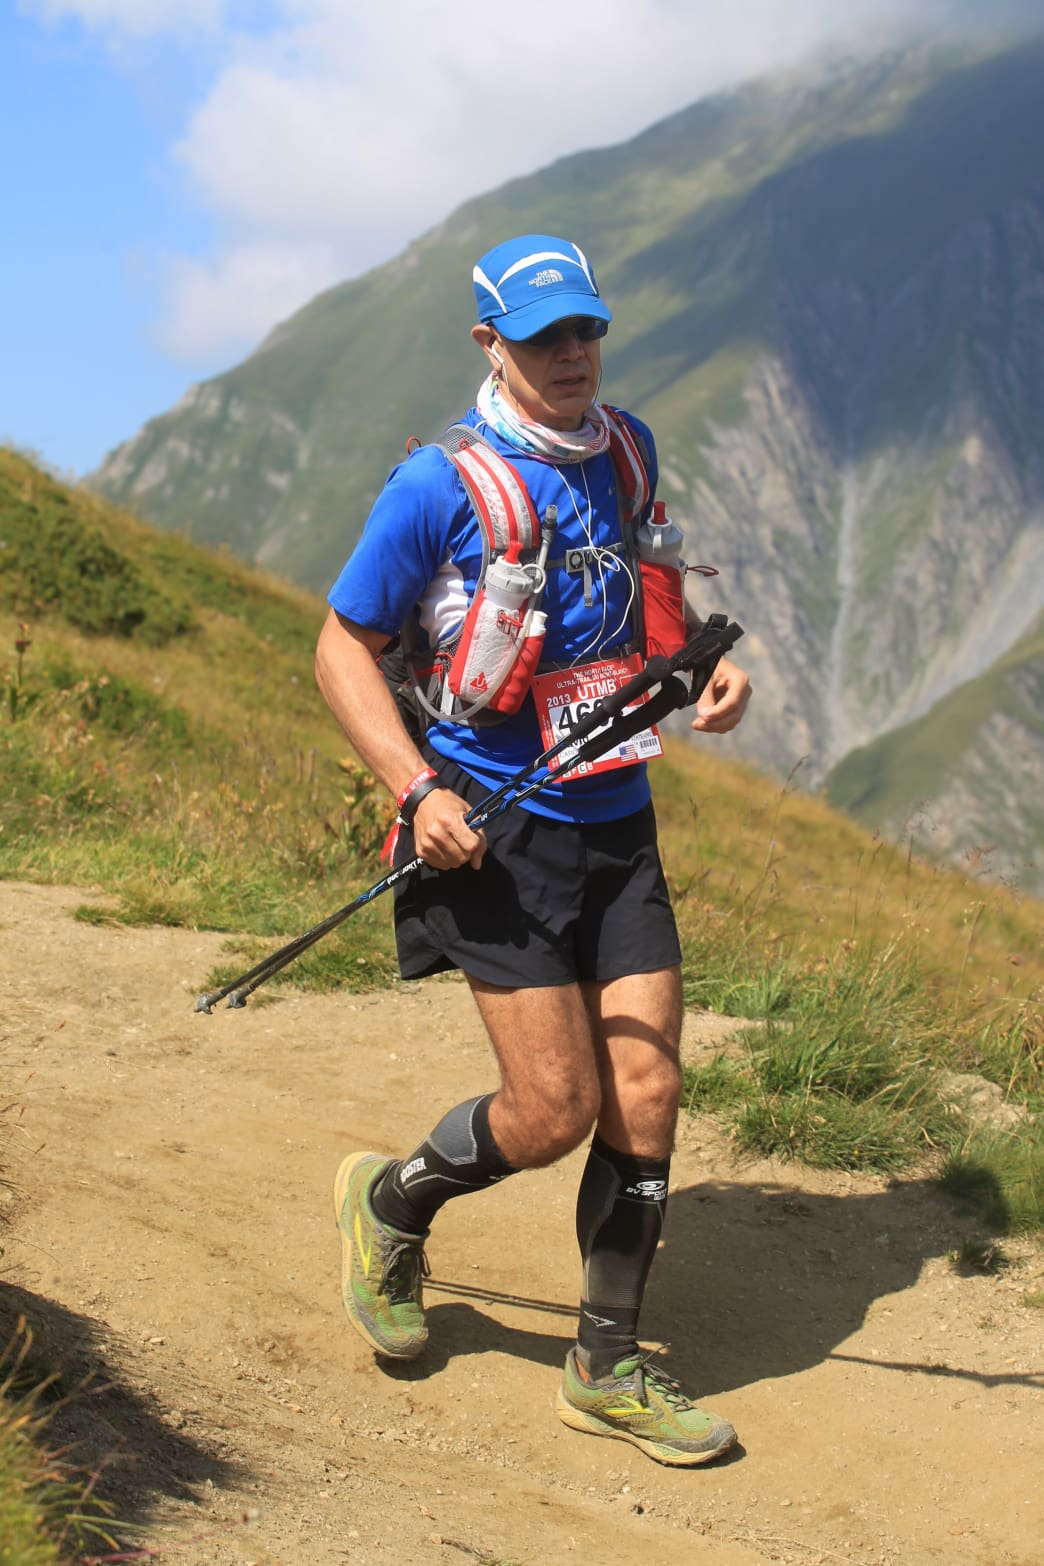 David Carder racing Ultra Trail Mont Blanc